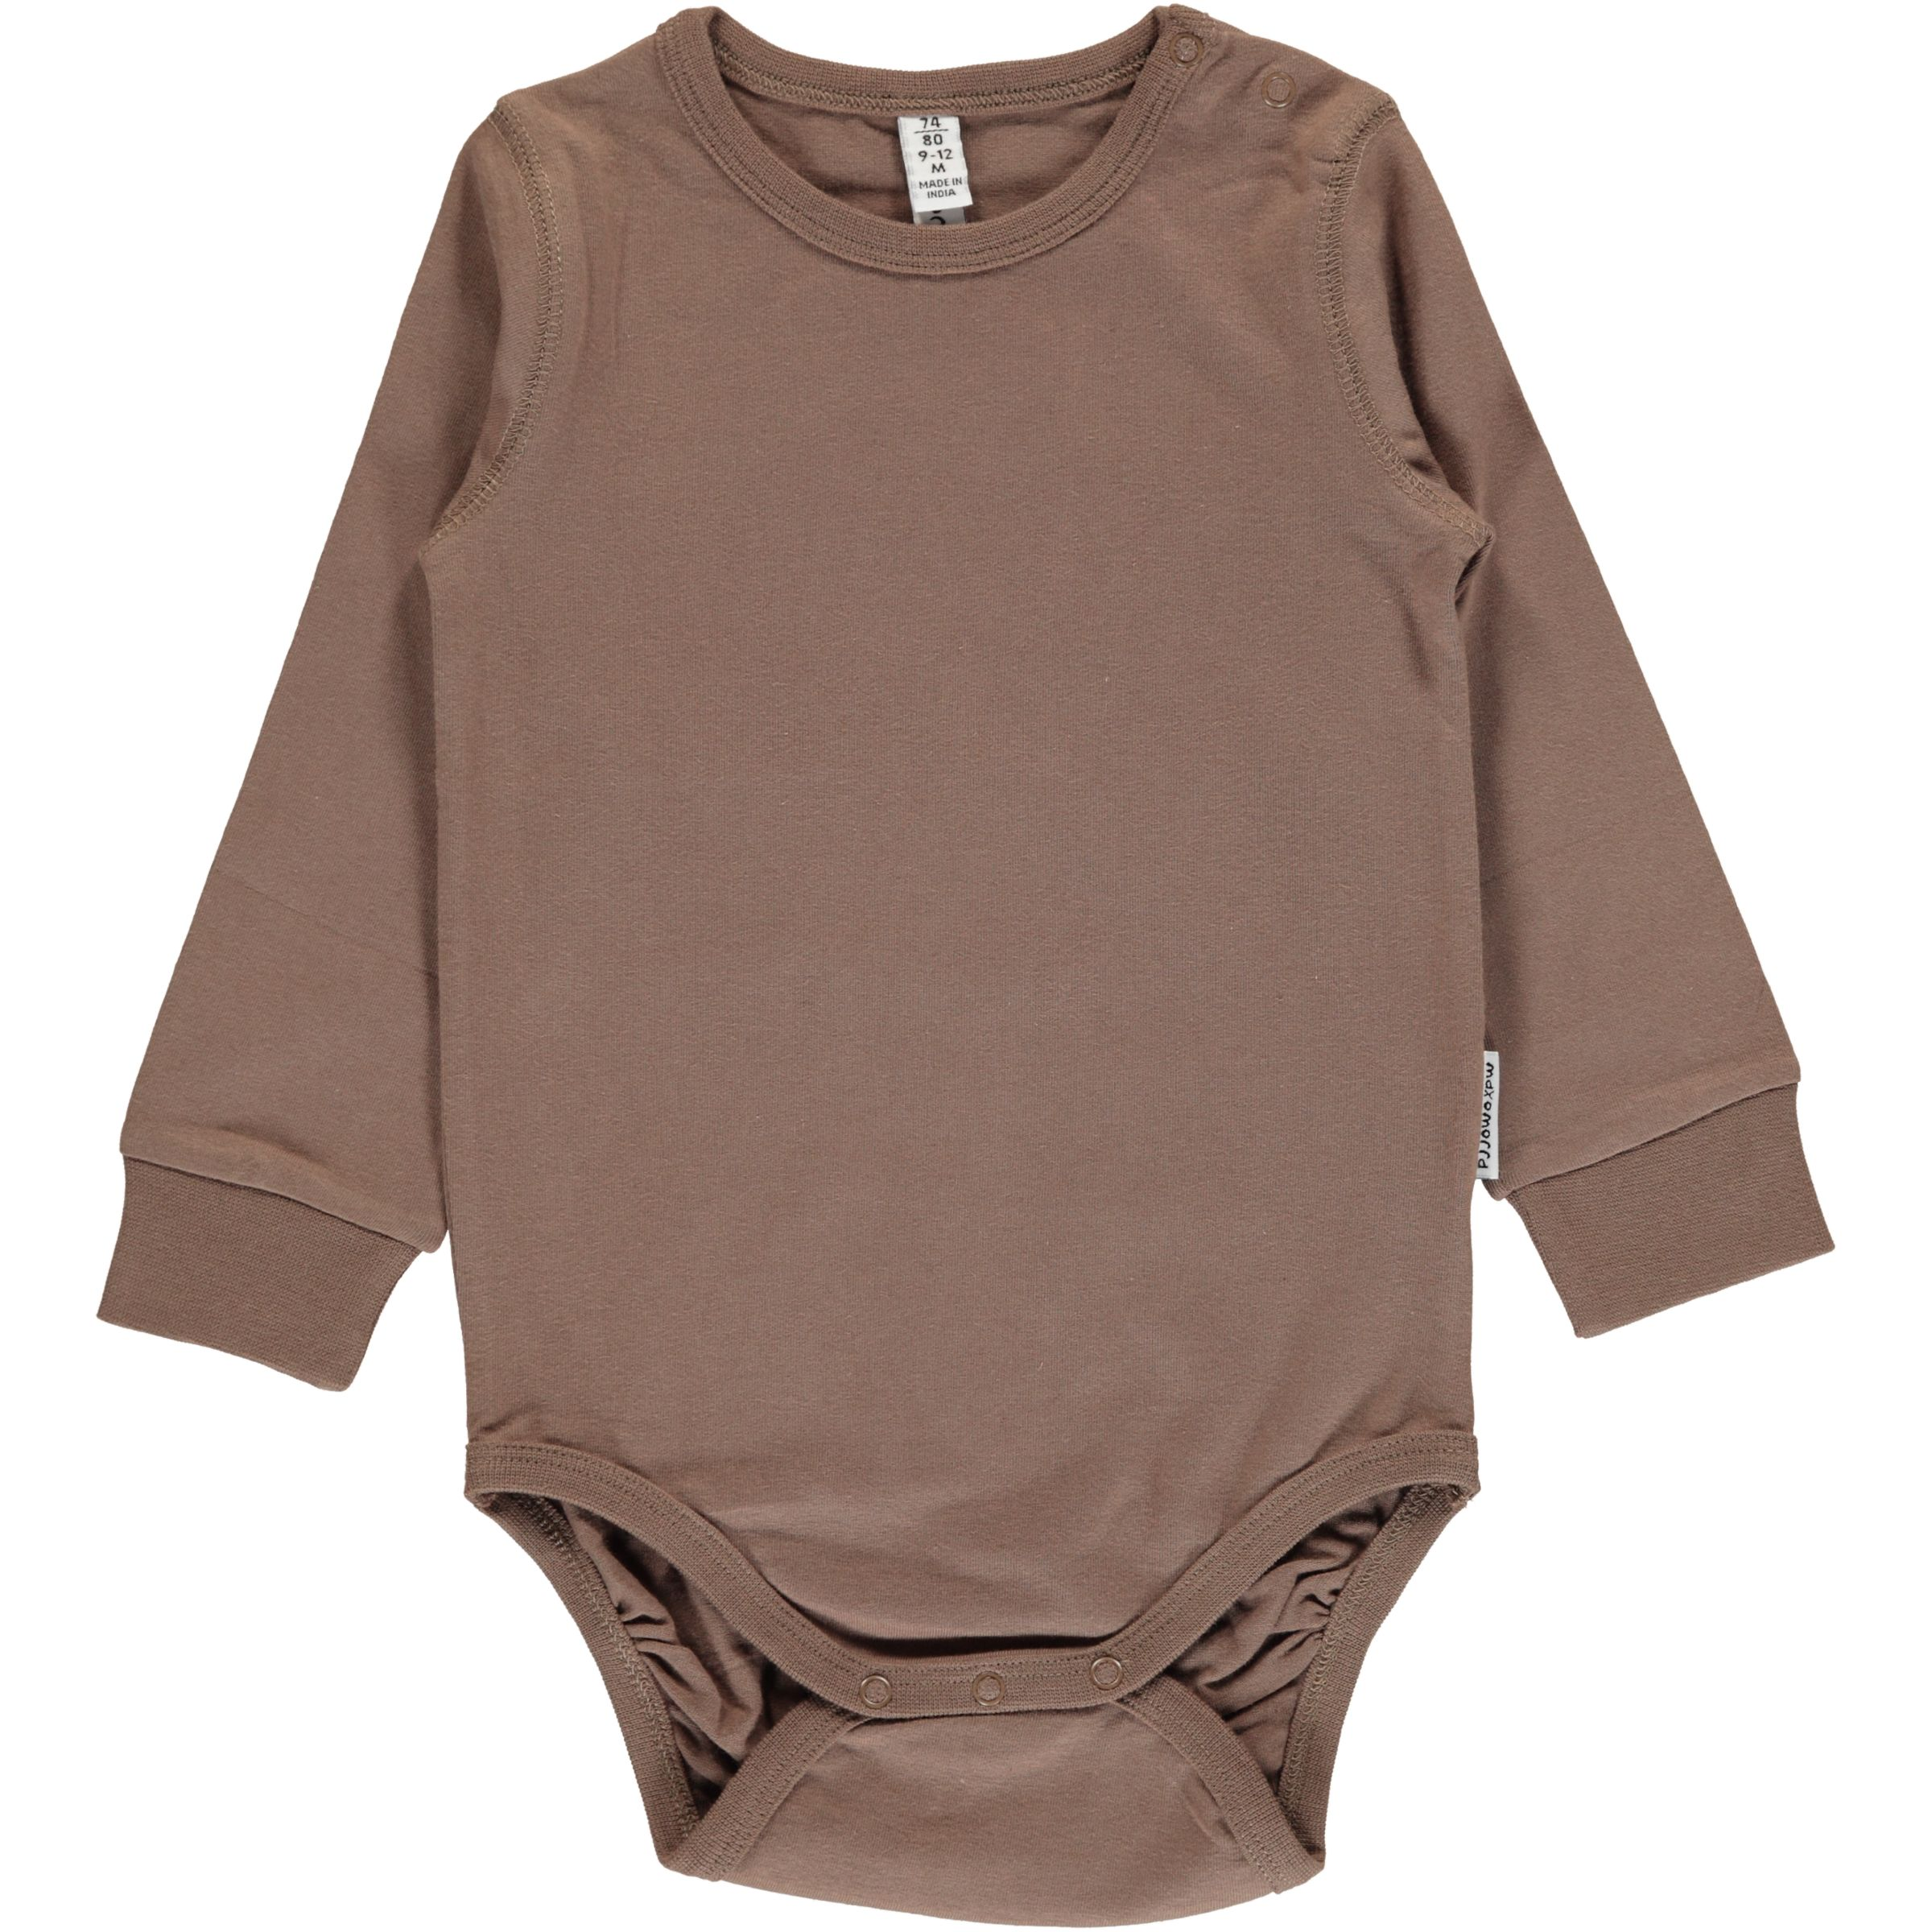 0a4c23d7f Hazel brown plain long sleeve organic baby vest by Maxomorra (74 ...